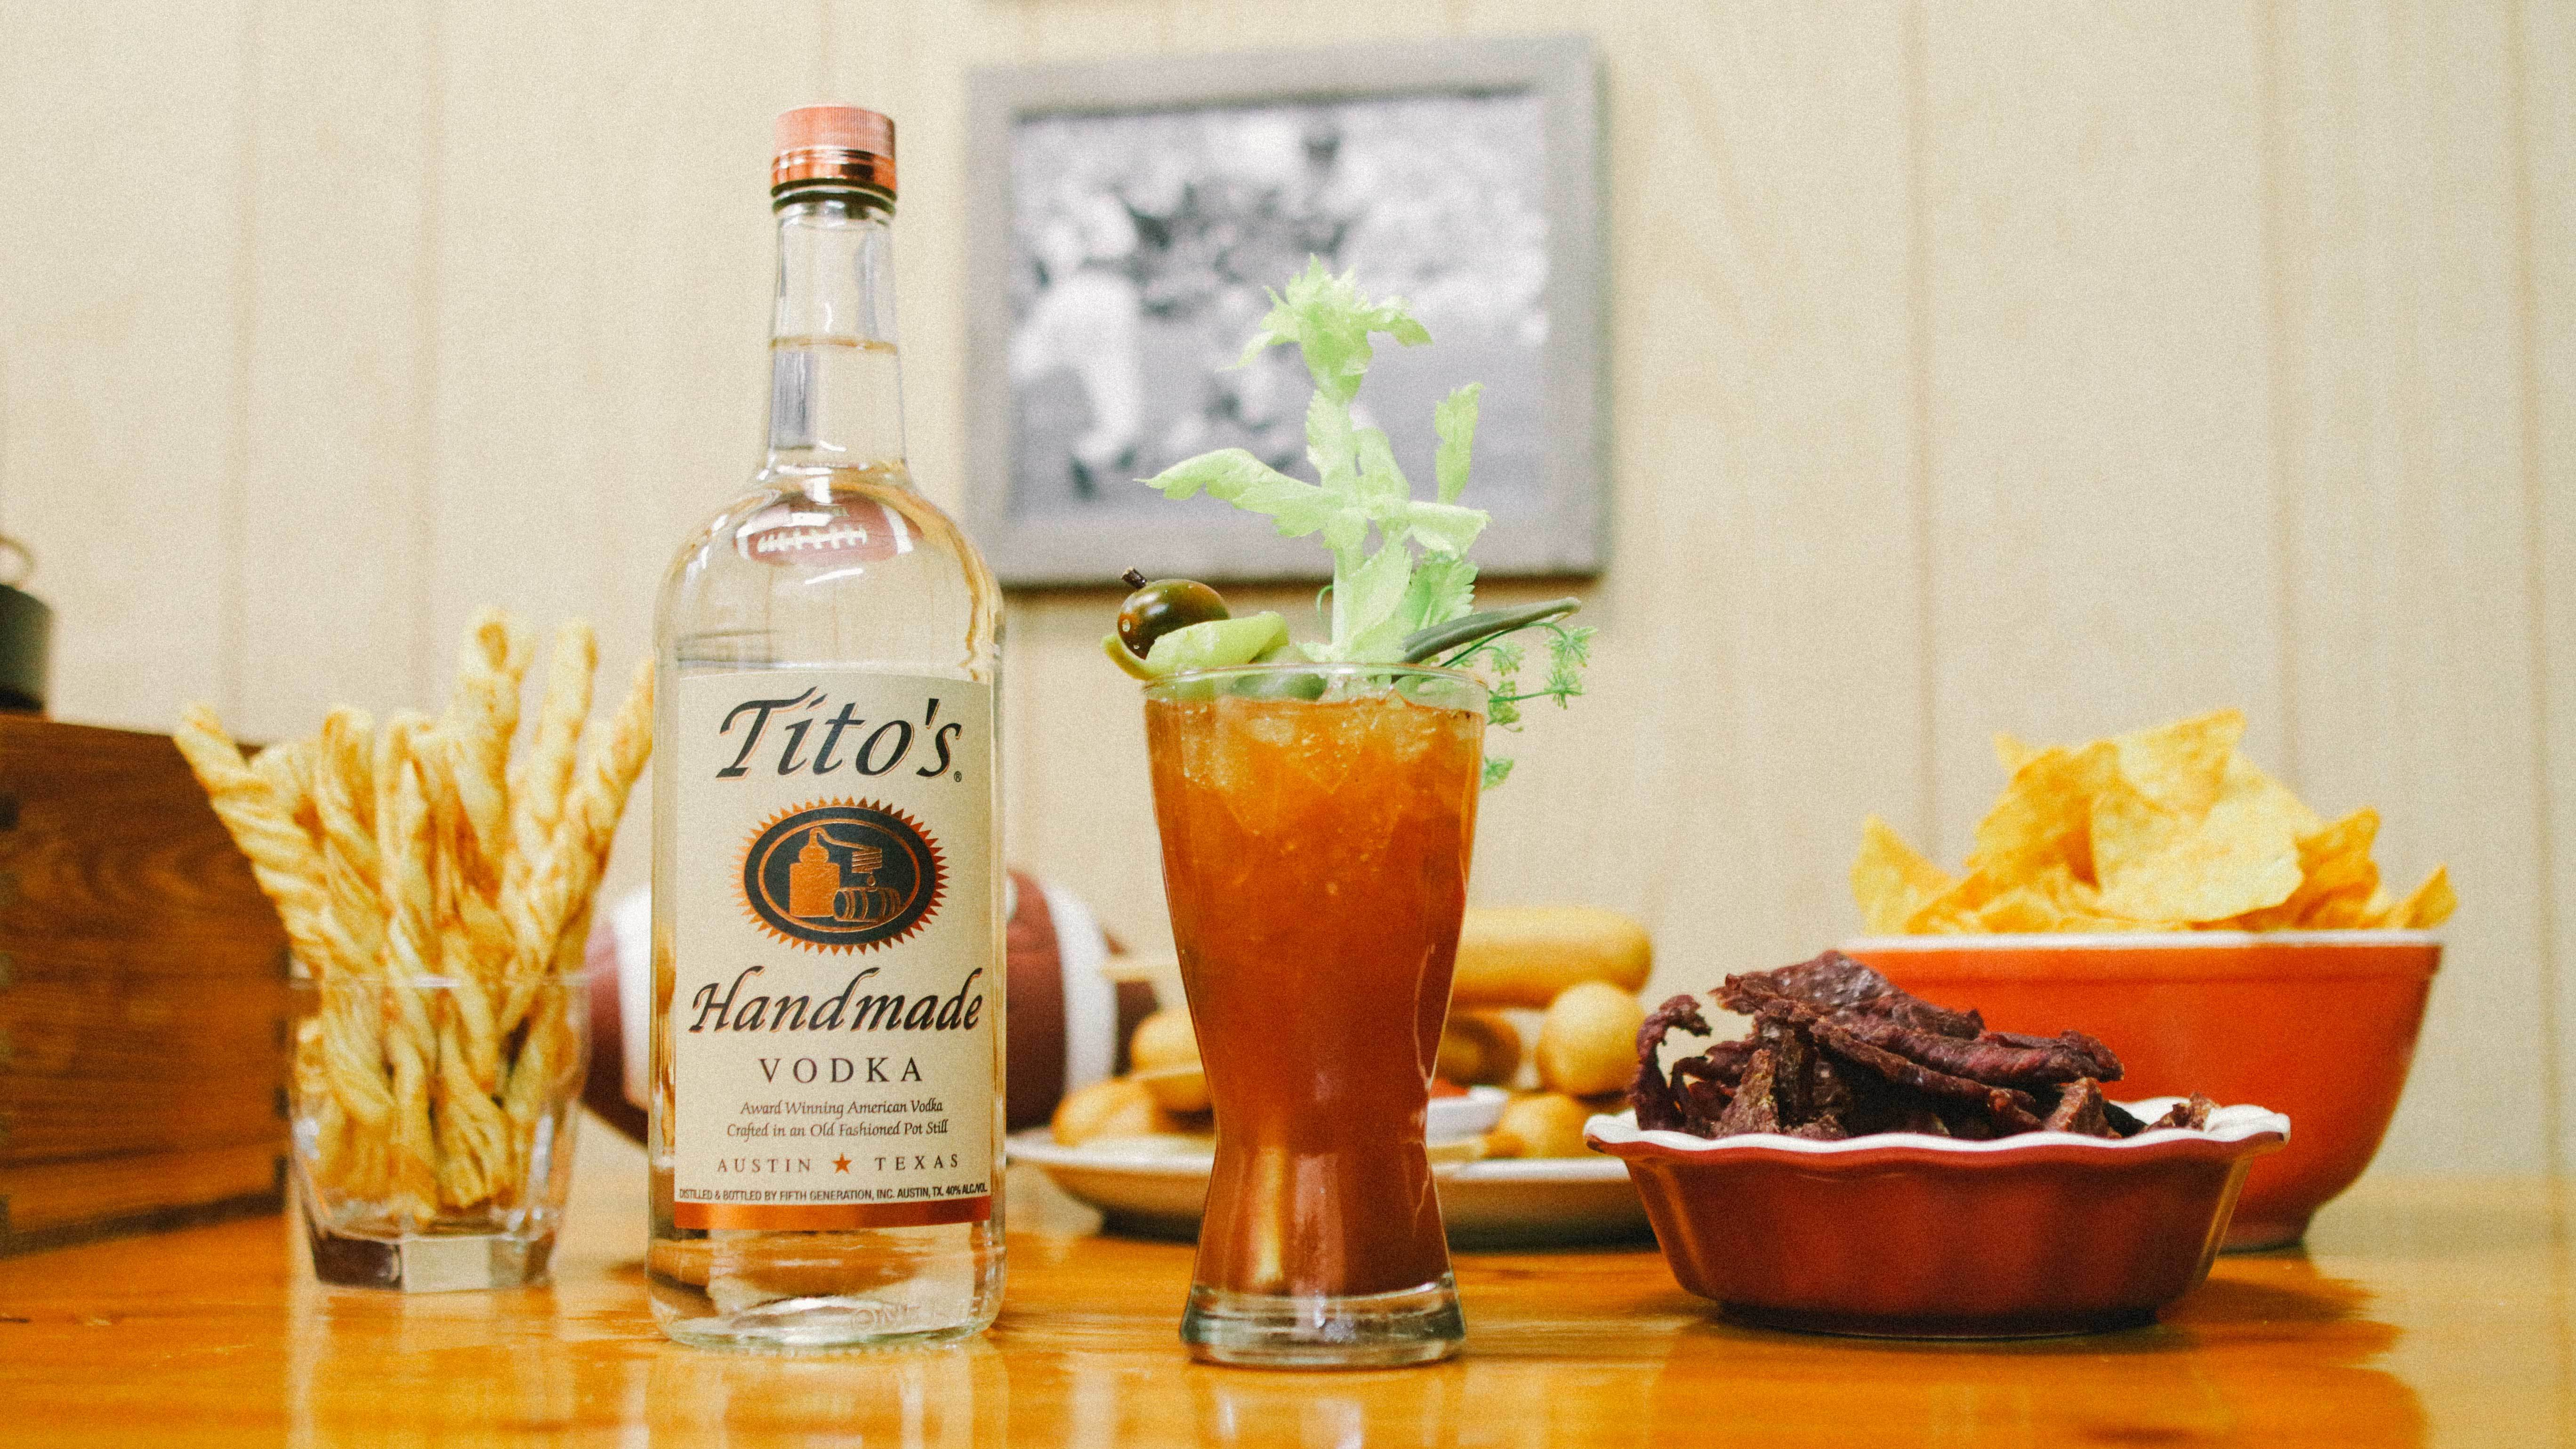 Tito's Bloody Mary on a table with a Tito's Vodka bottle and bowls of snacks